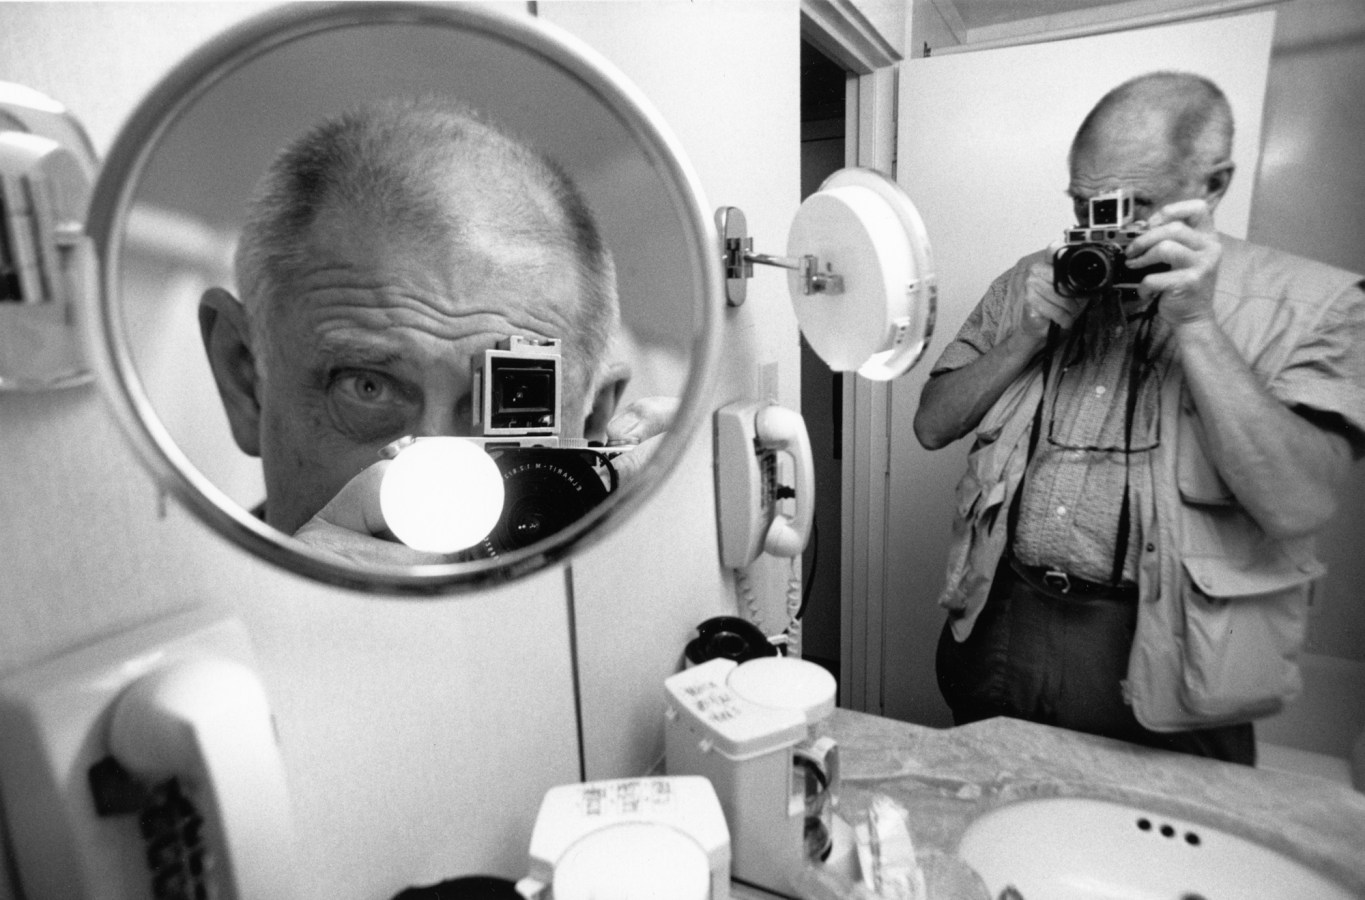 A black and white photograph of a self portrait of the artist in the reflection of two different bathroom mirrors